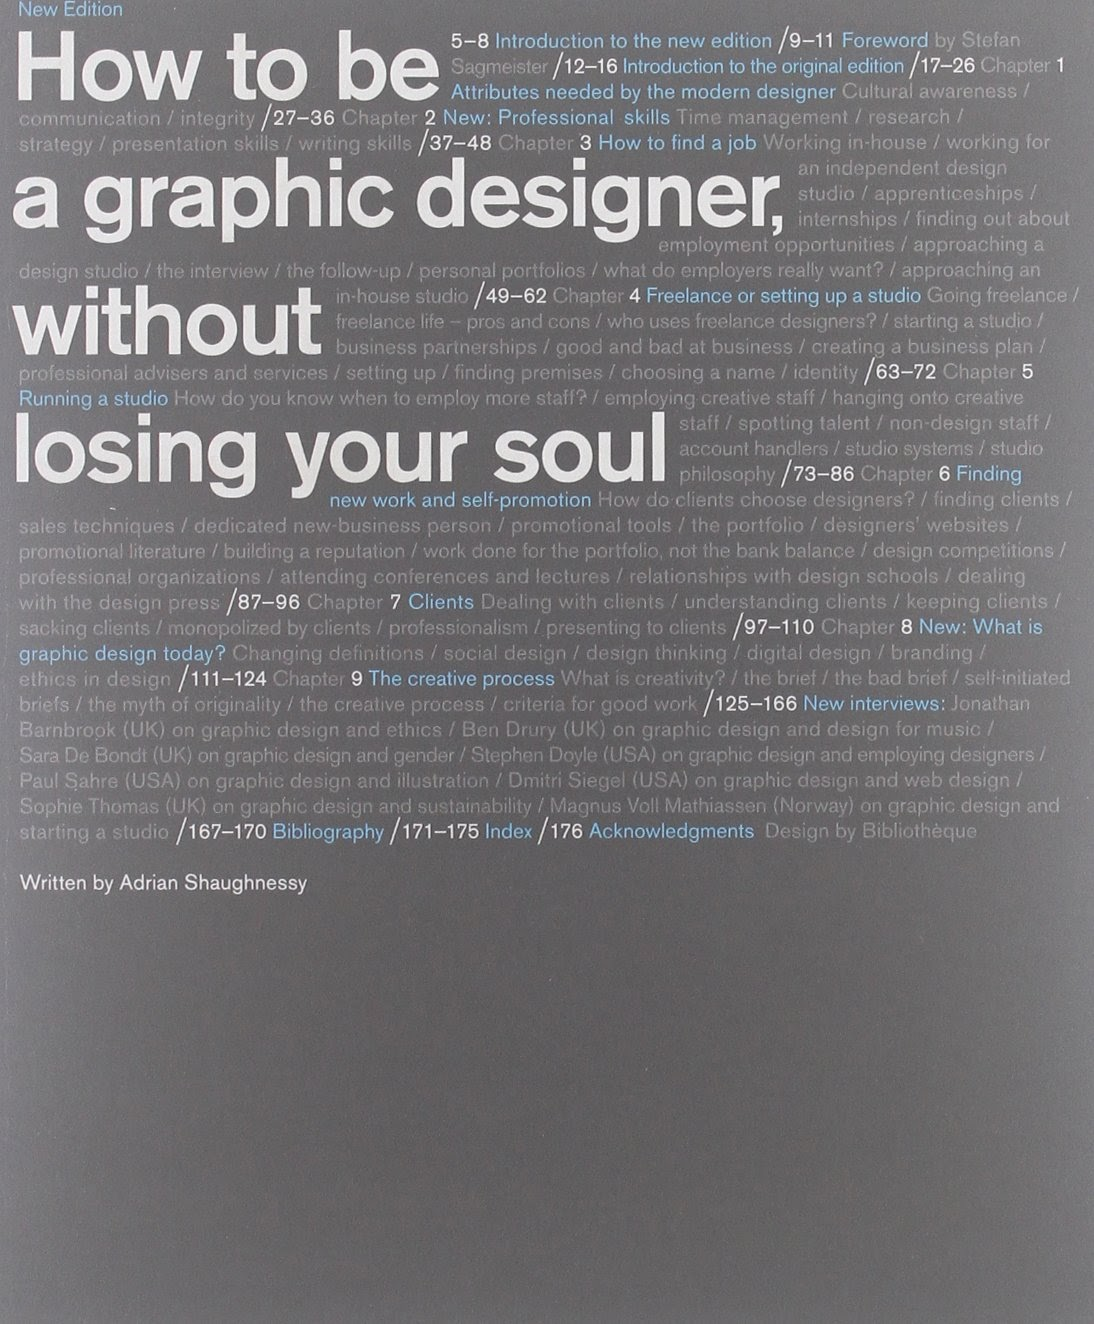 How to Be a Graphic Designer without Losing Your Soul (New Expanded Edition) - Adrian Shaughnessy